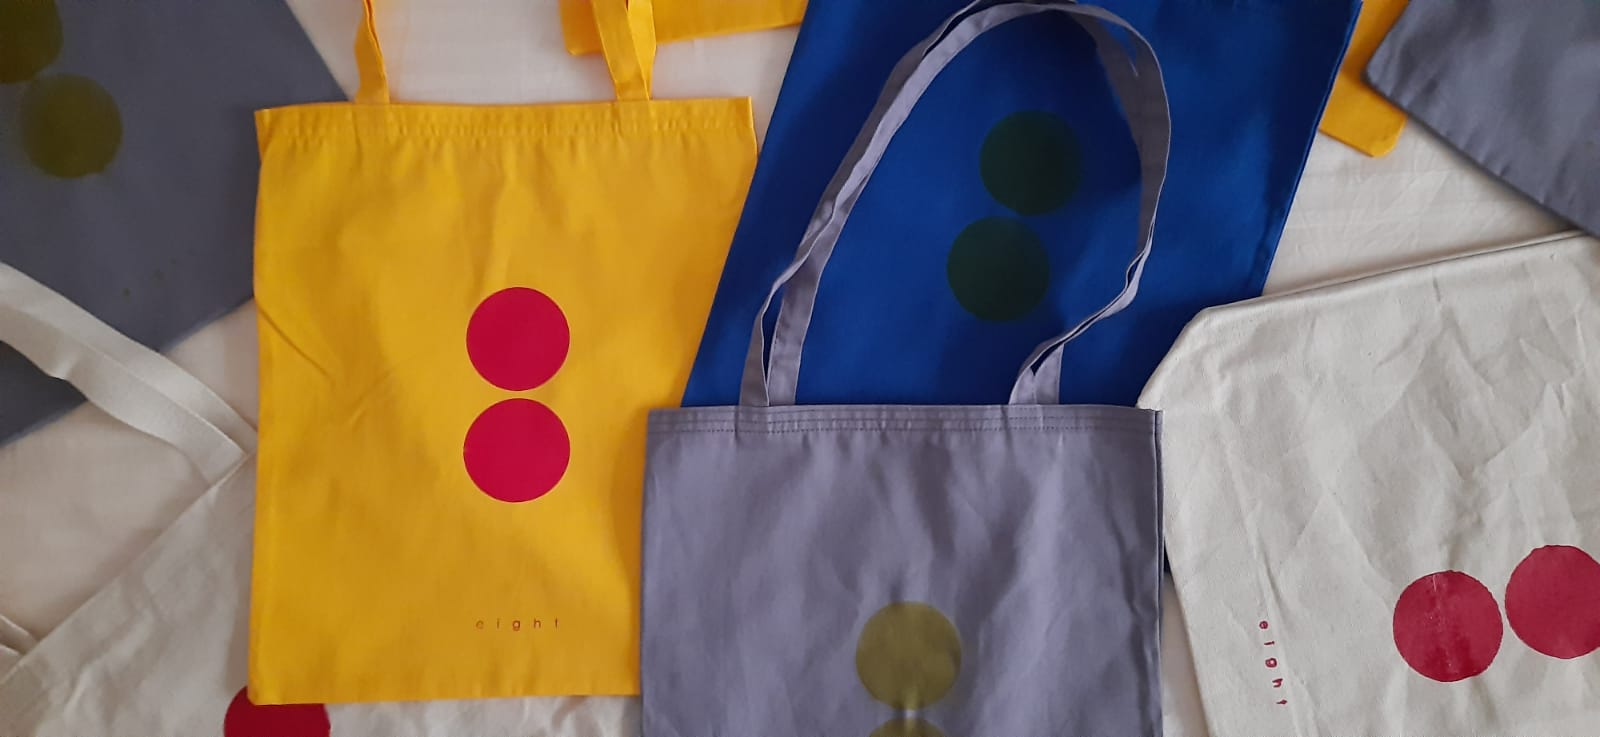 Eight totebags of a variety of colors are spread around overlapping one another.